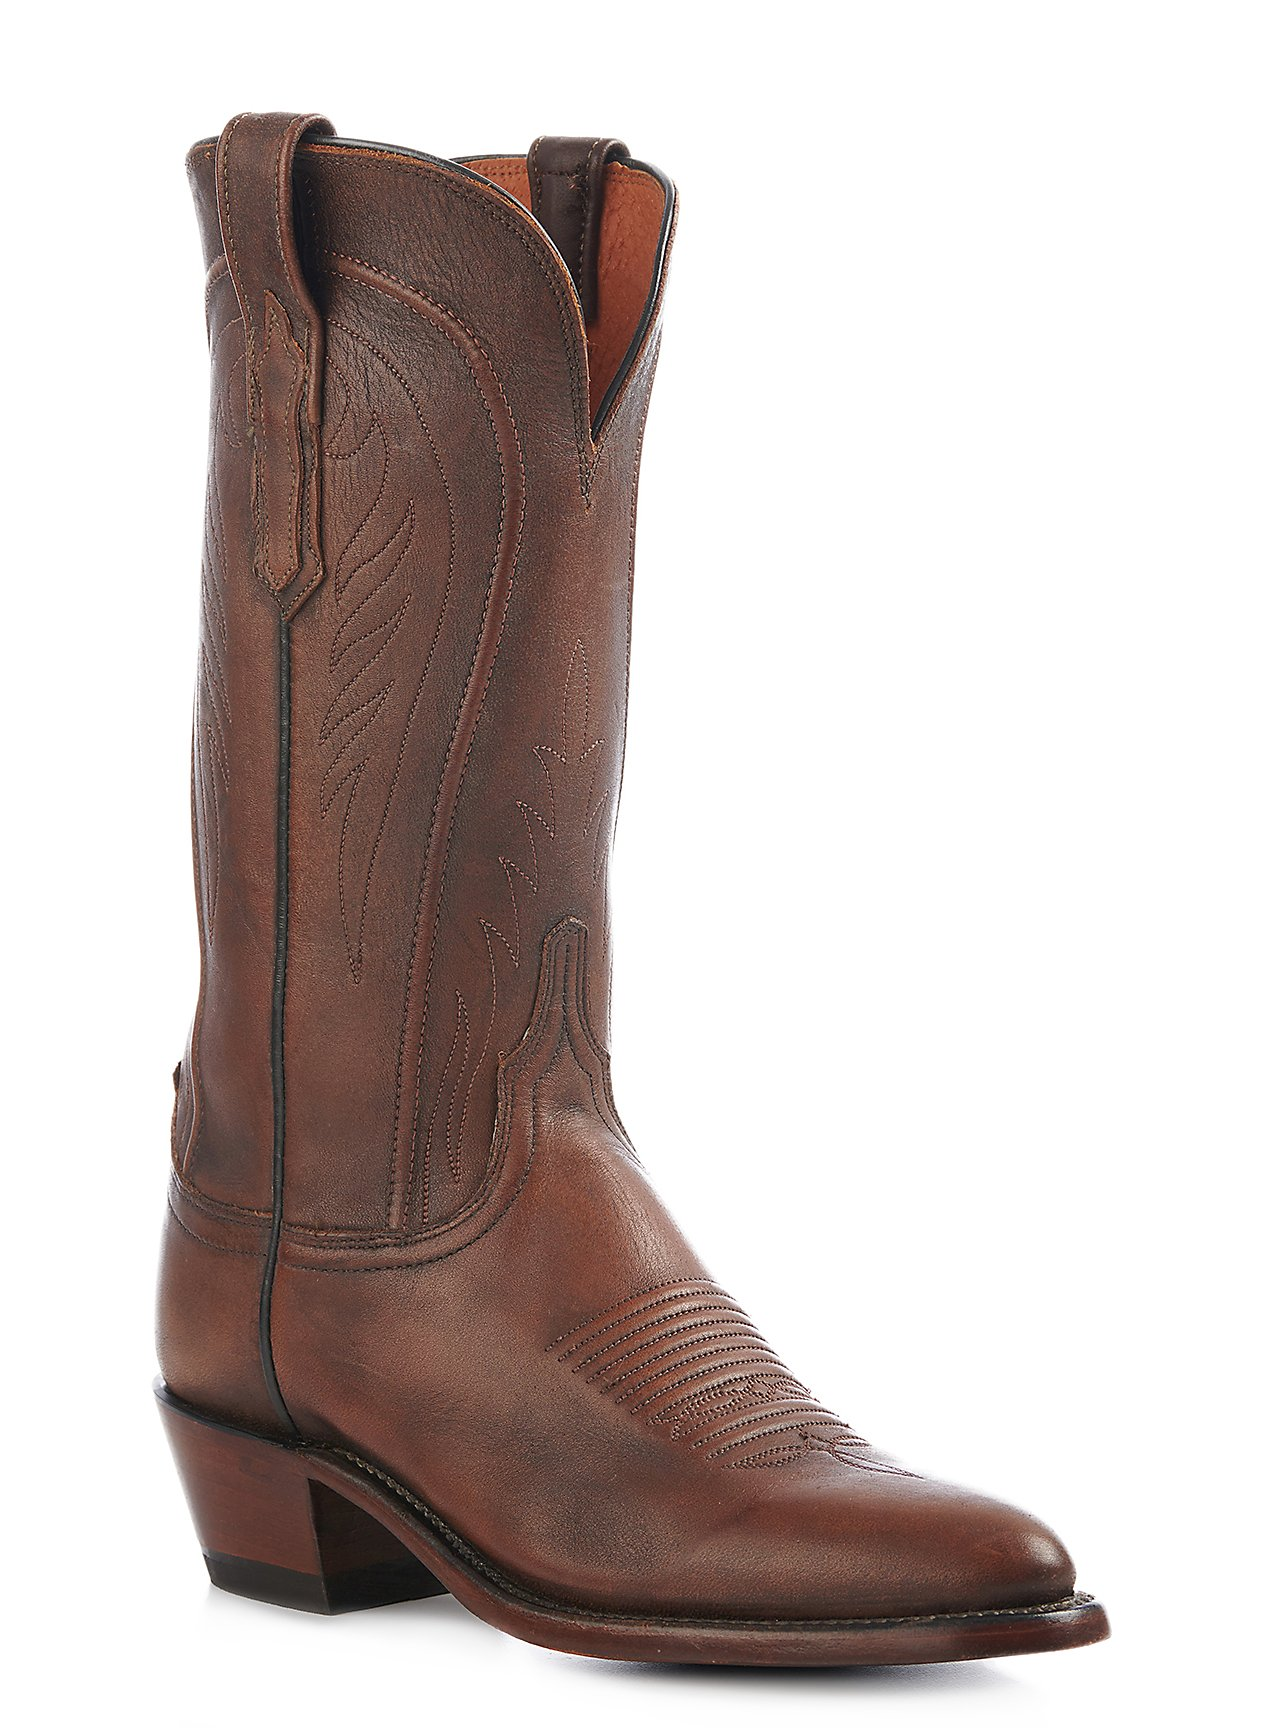 Lucchese 1883 Women s Antique Peanut Brittle Mad Dog Goat Traditional R-Toe  Western Boots f0cb951b57